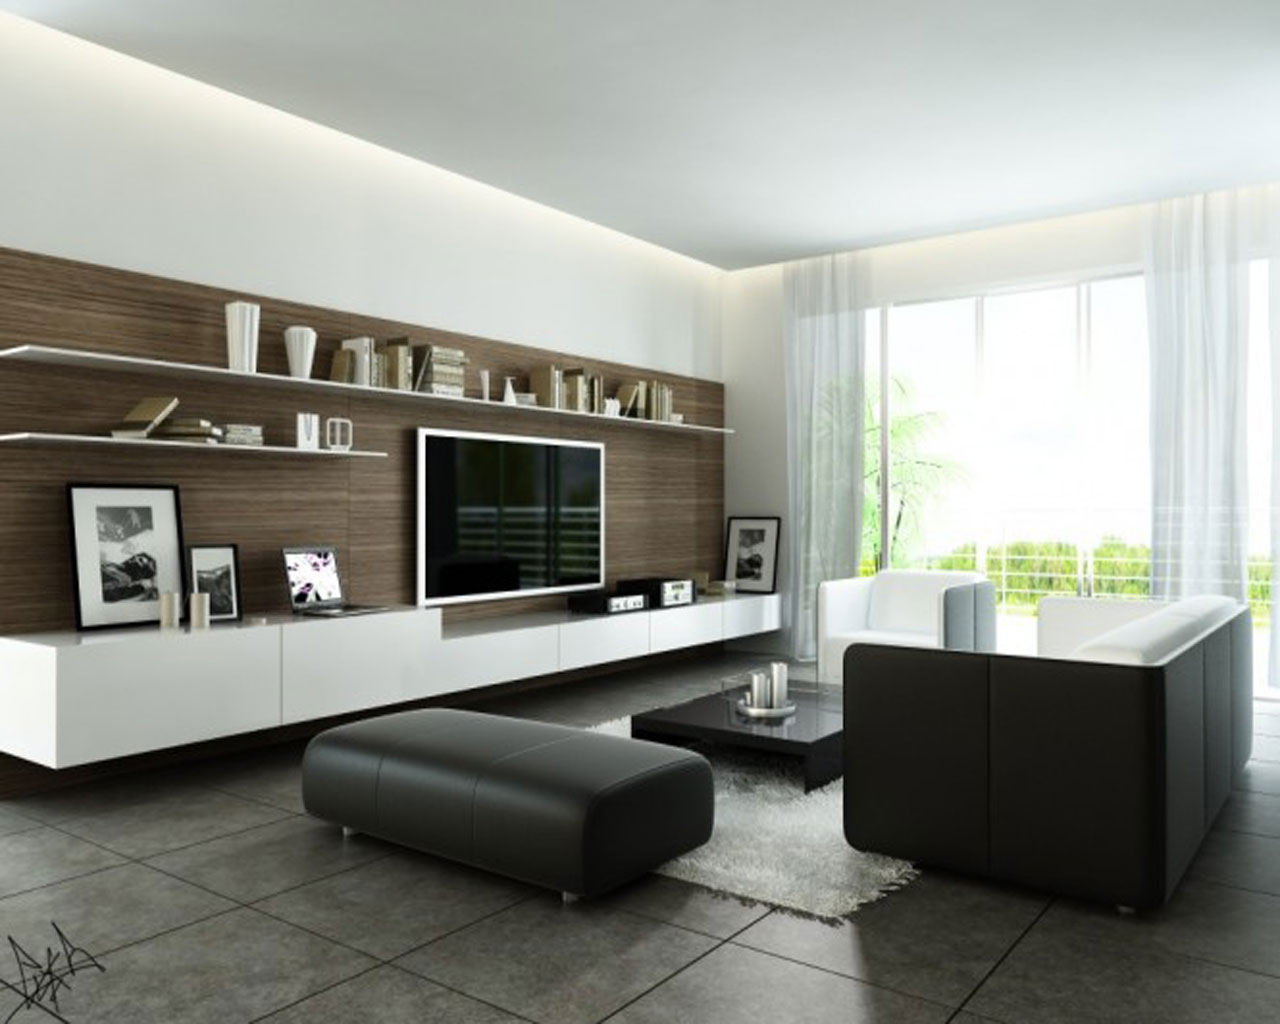 Living Room Modern Design Style modern type style art nouveau in interior design home ranch style